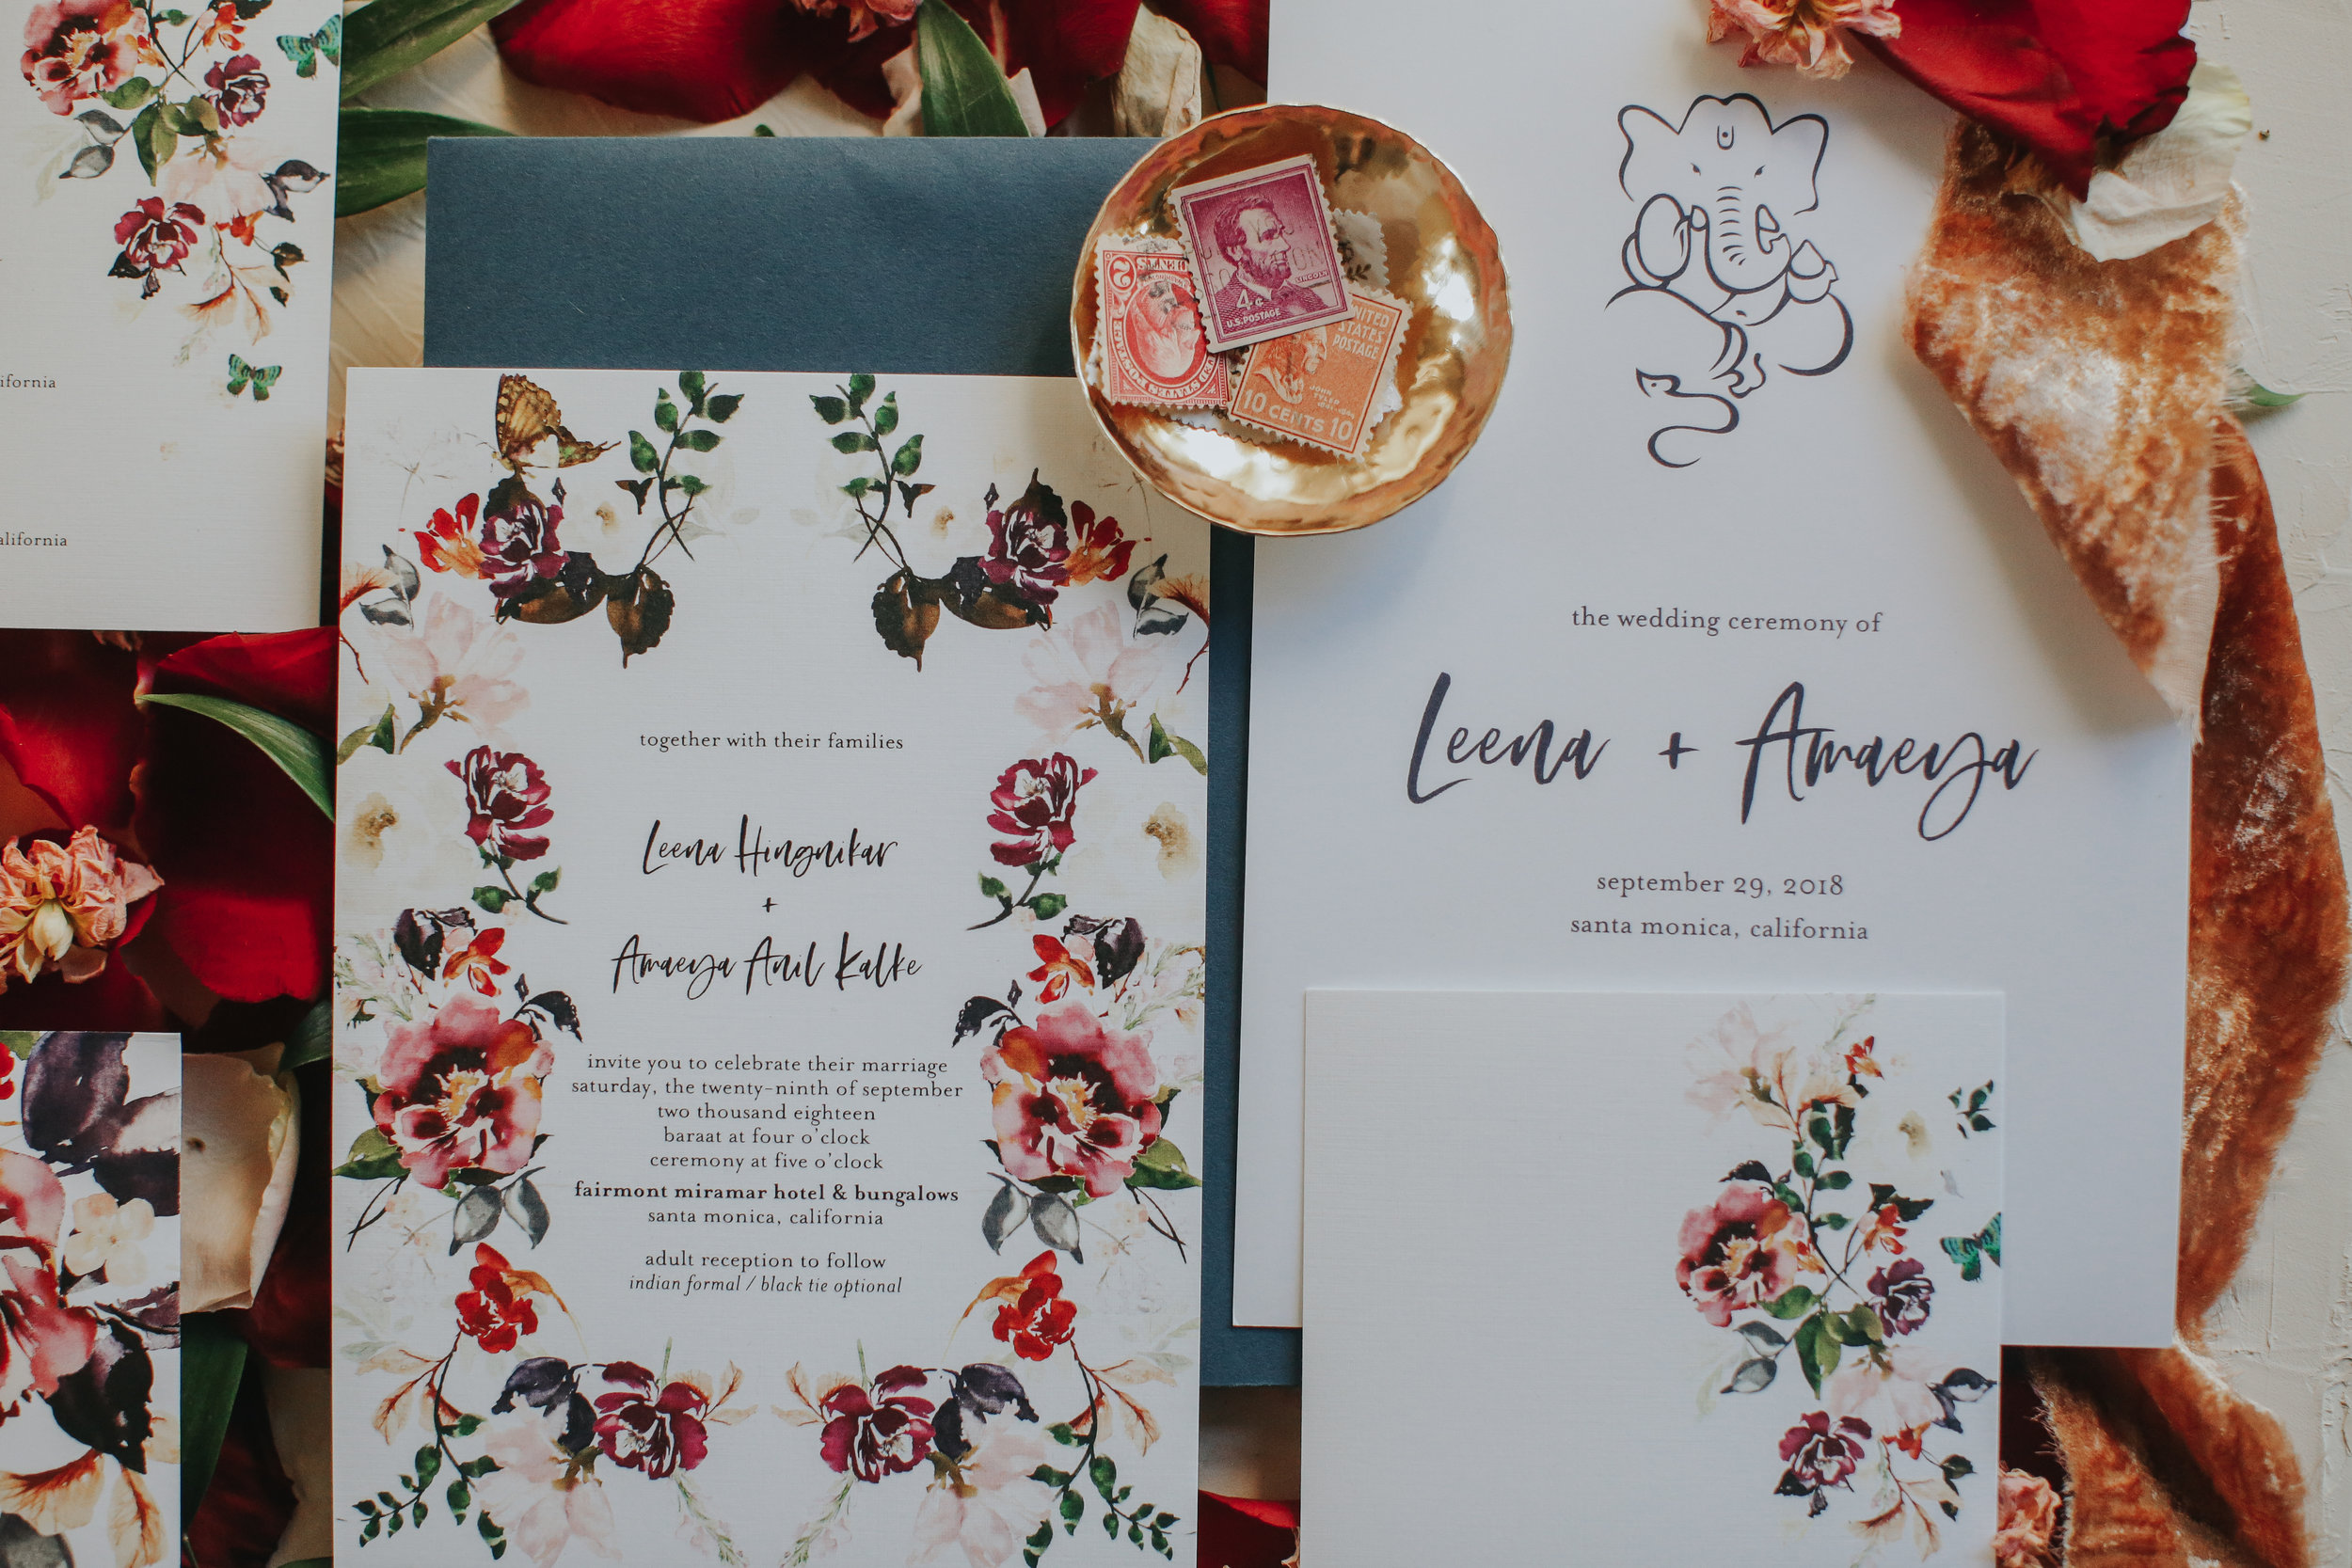 Custom floral wedding invitations, shabby chic wedding invitations, Los Angeles wedding  || Orange Blossom Special Events